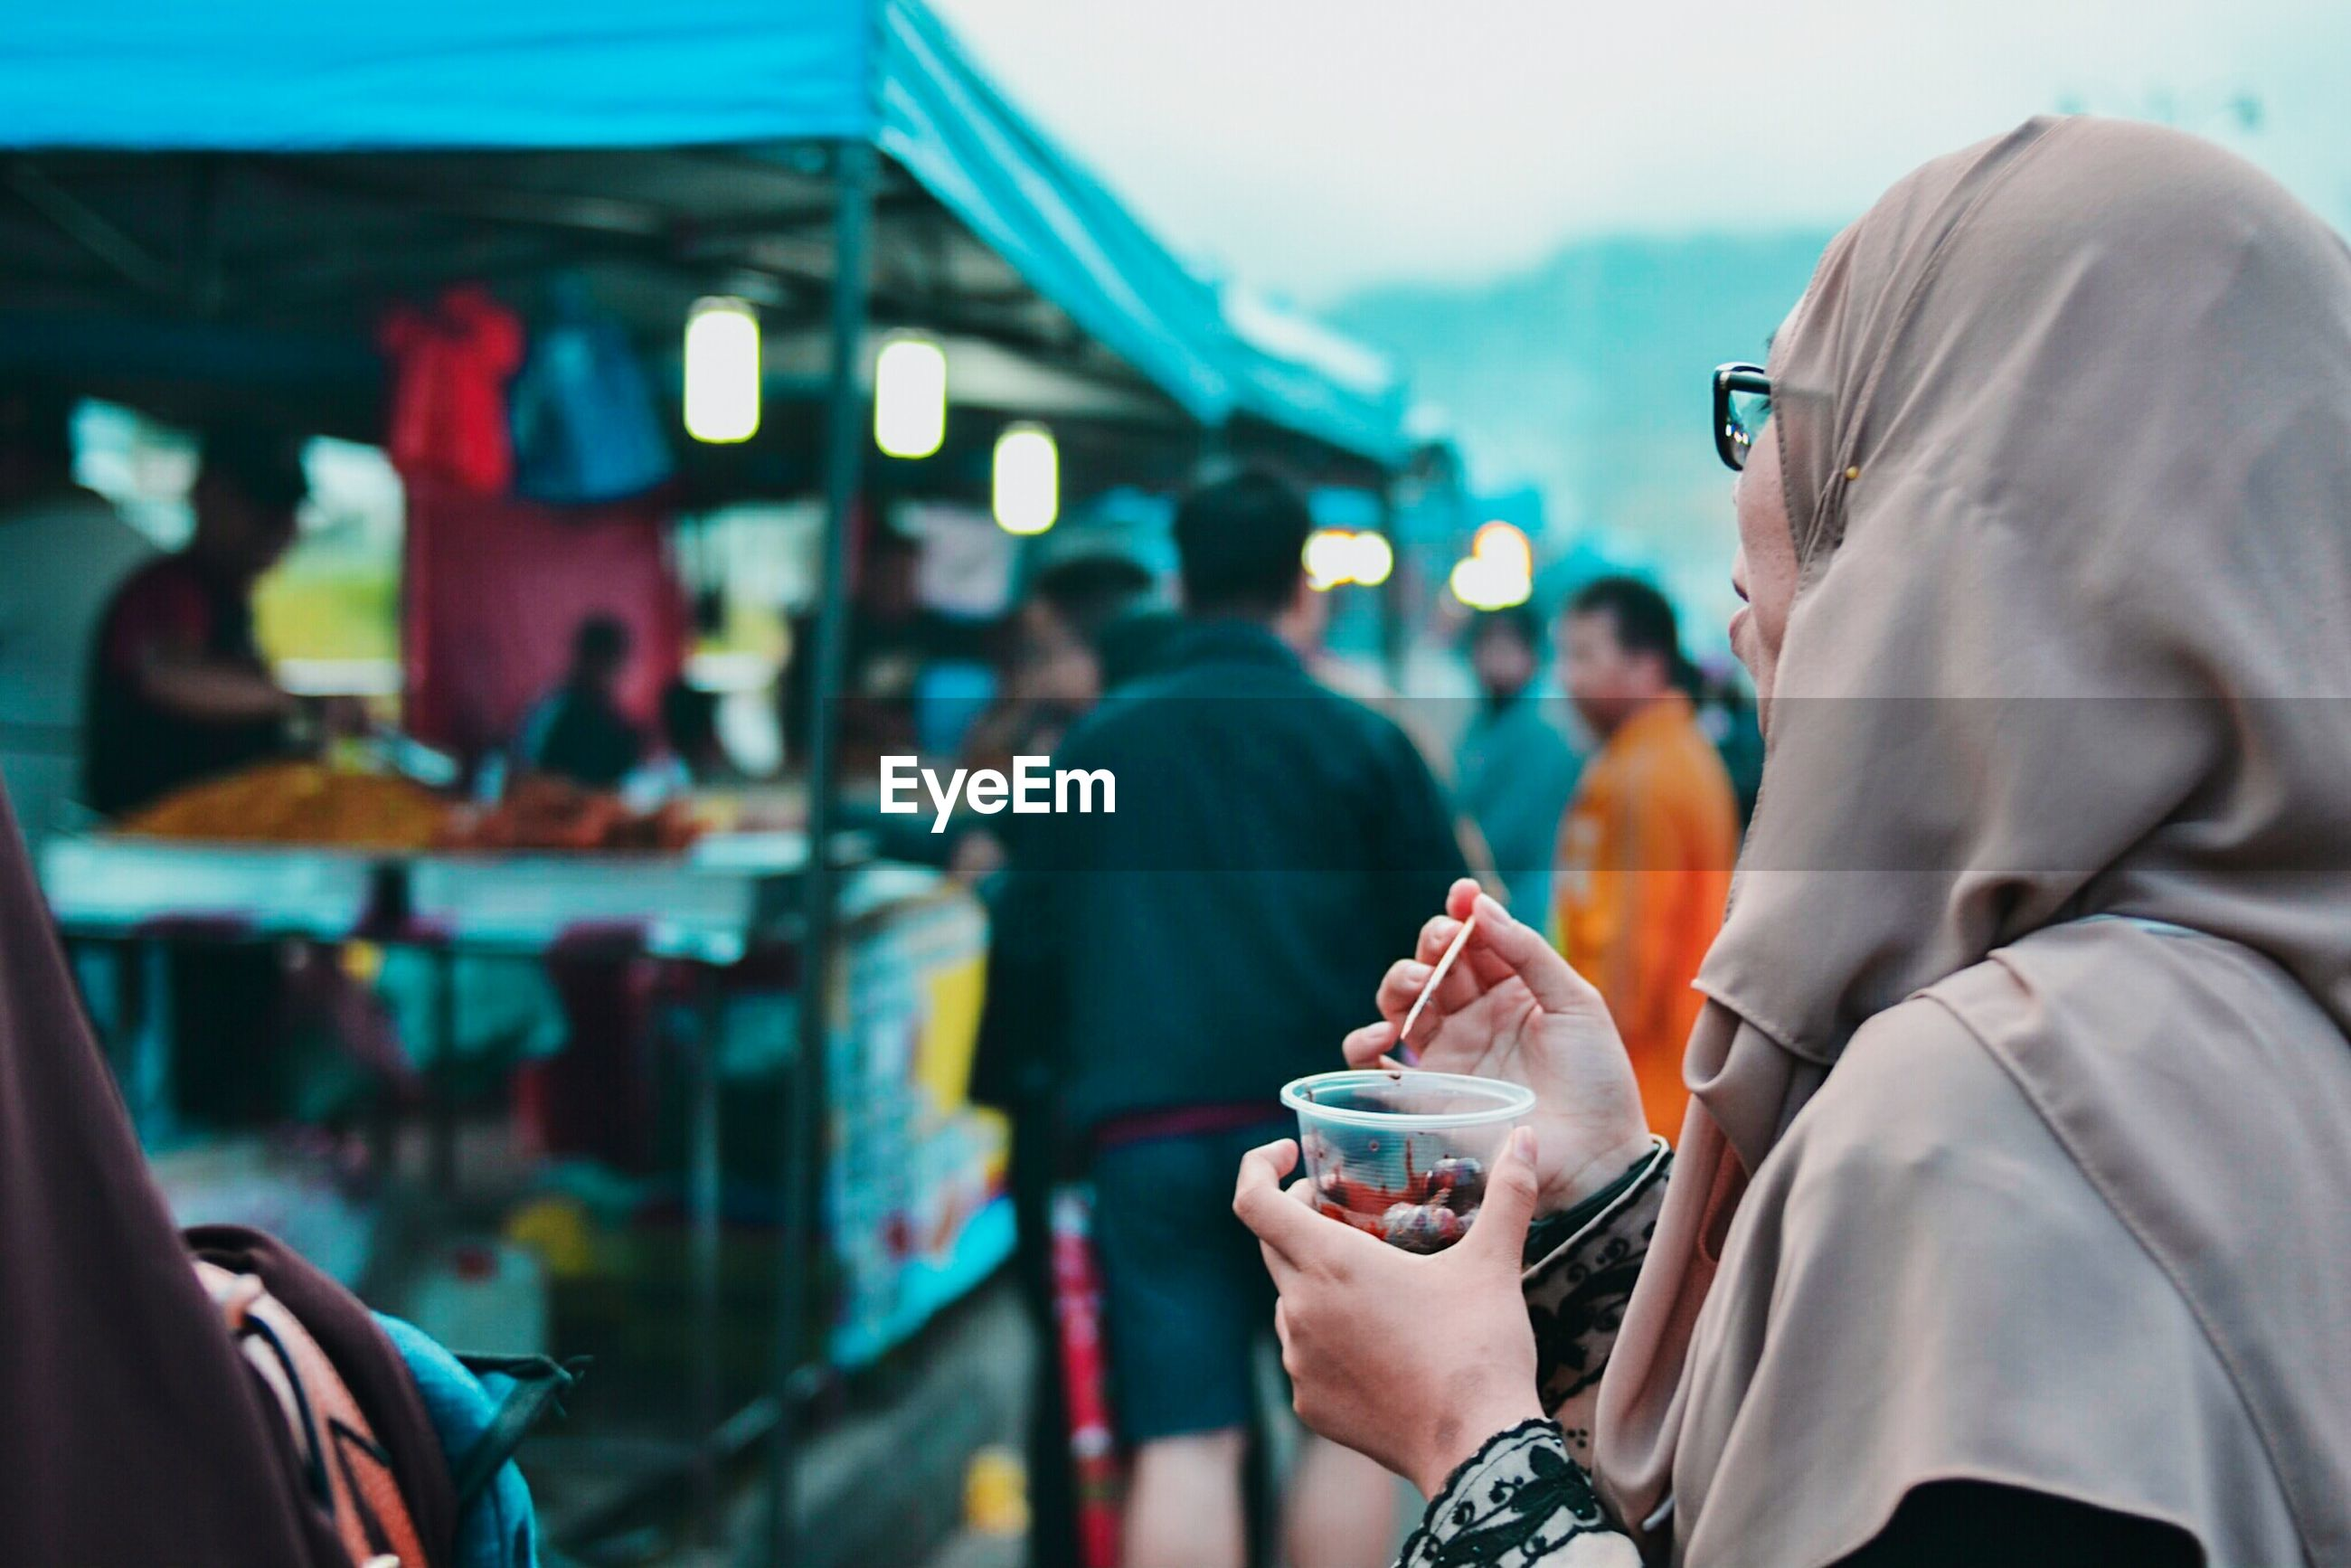 Woman having food at market stall